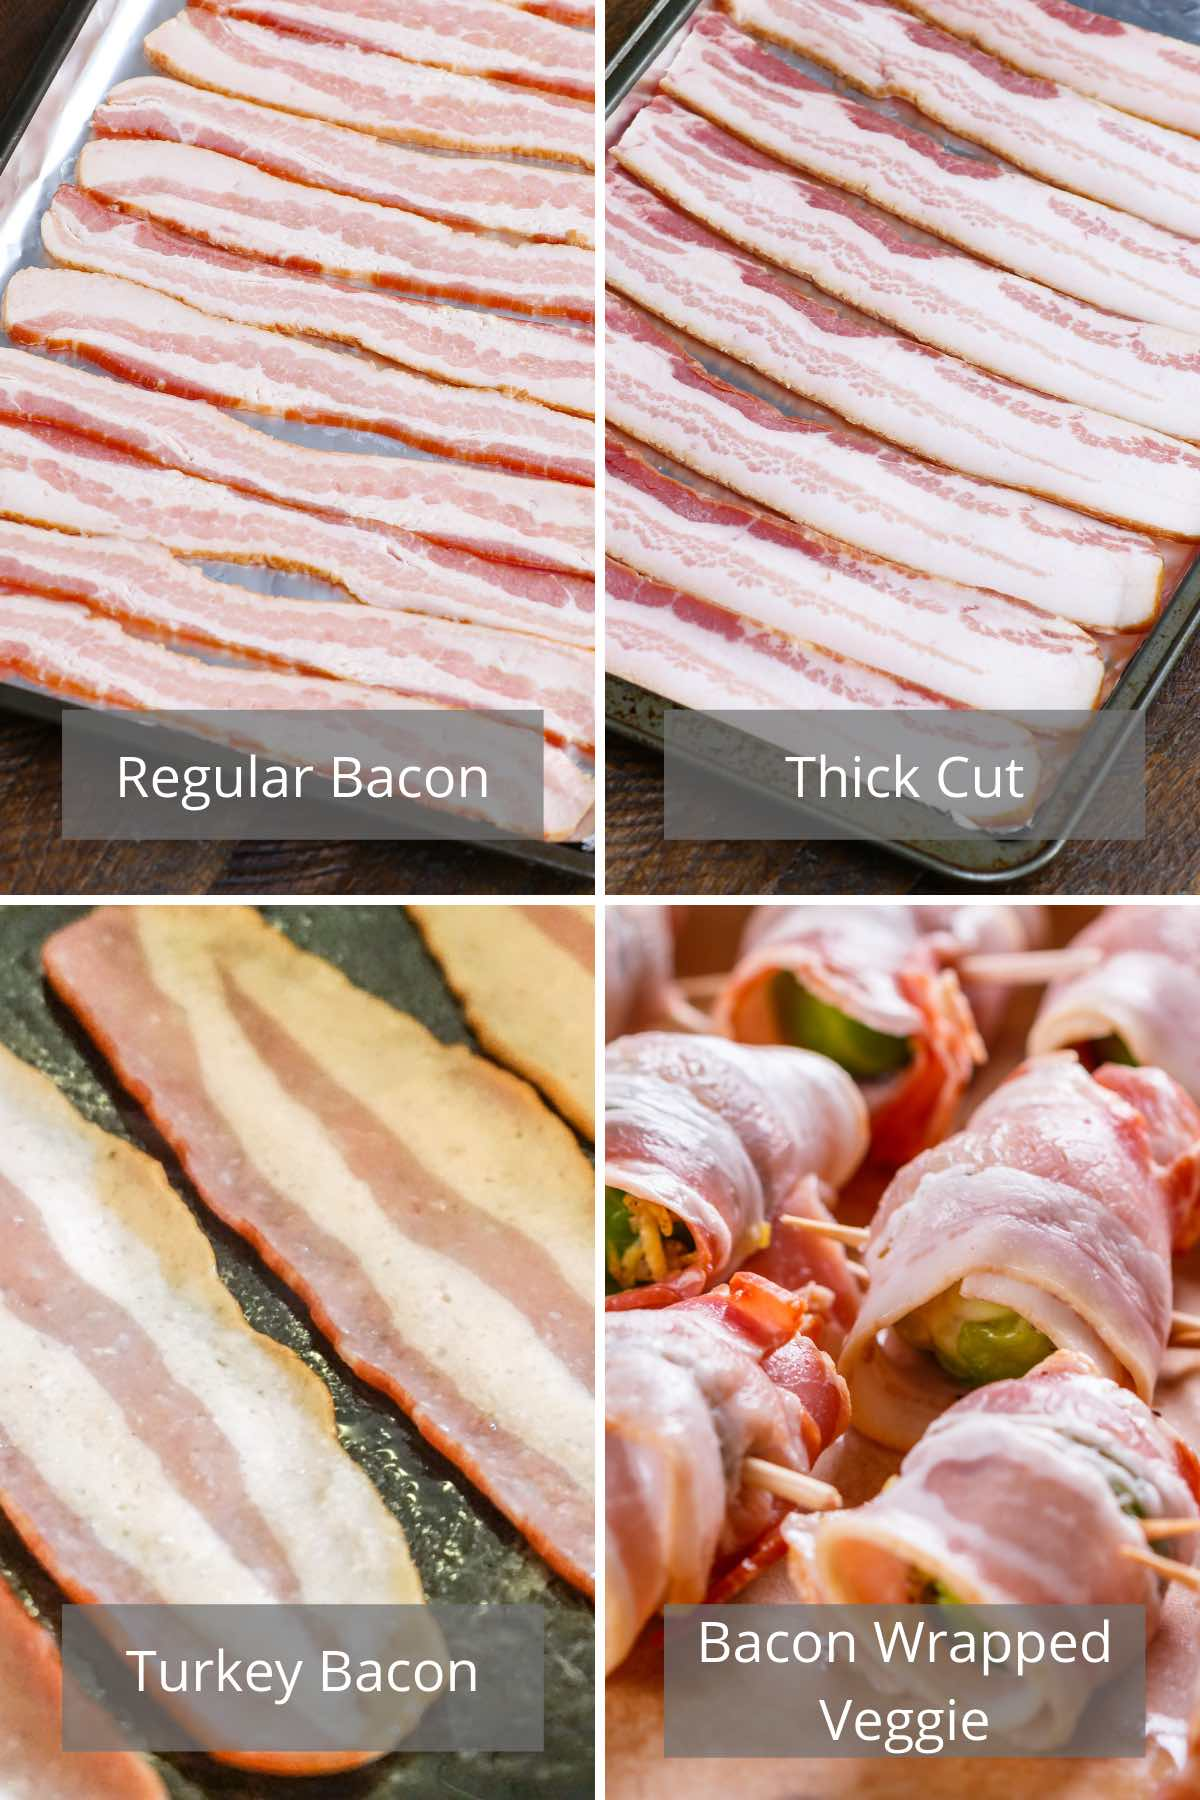 Photo collage showing different types of bacon.